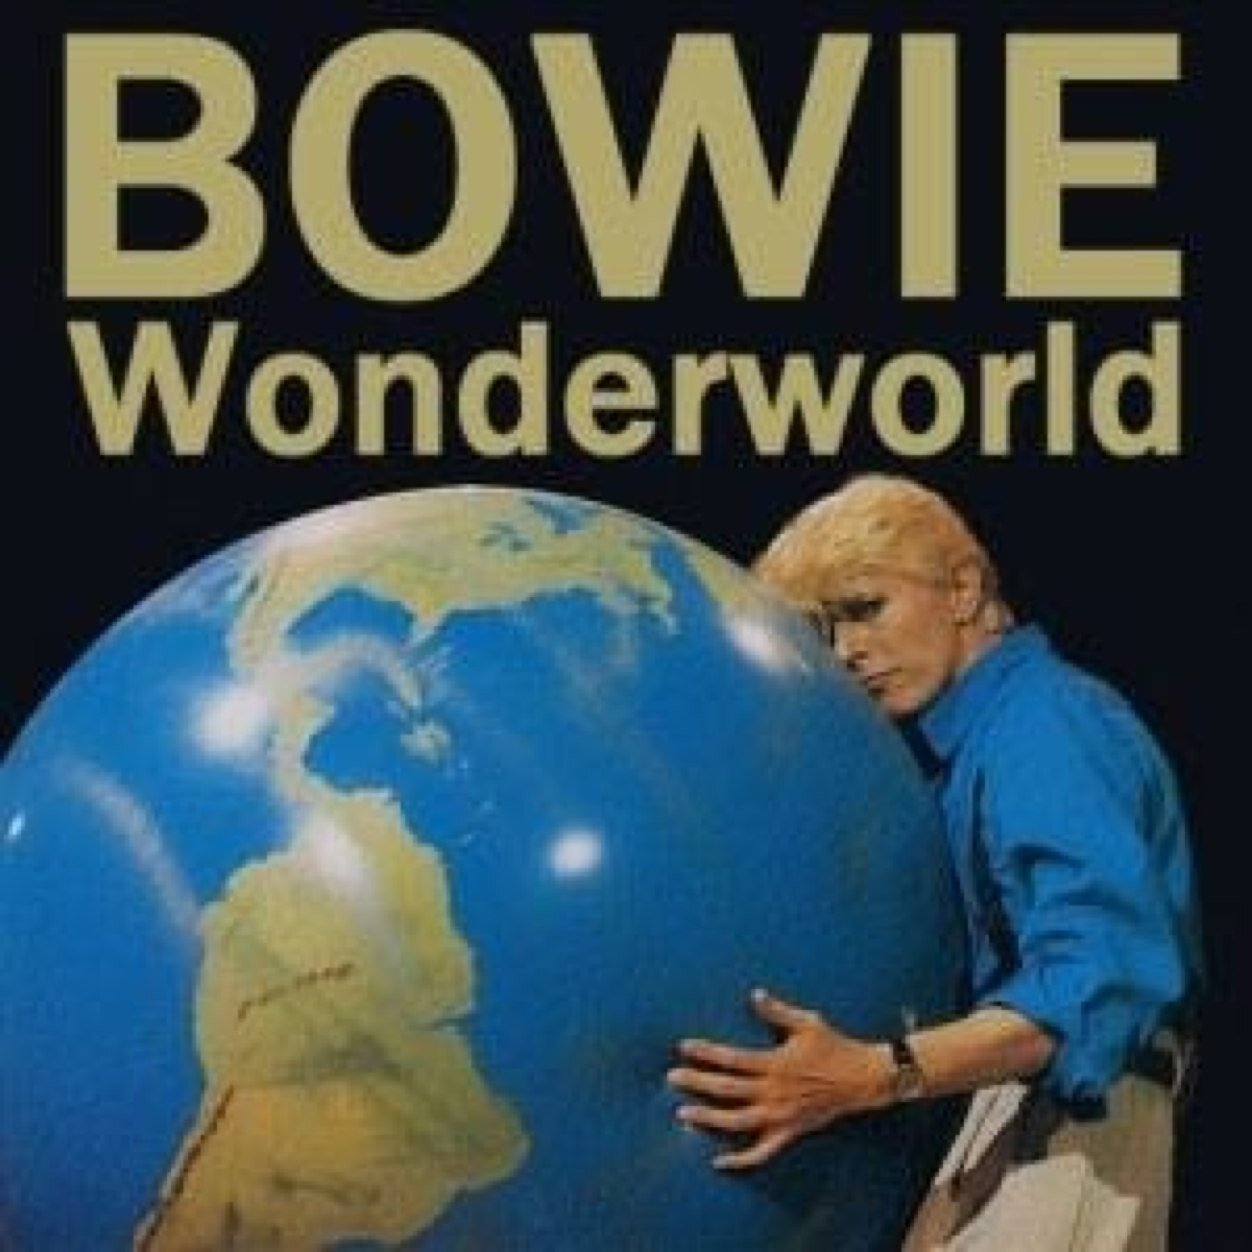 David Bowie Wonderworld